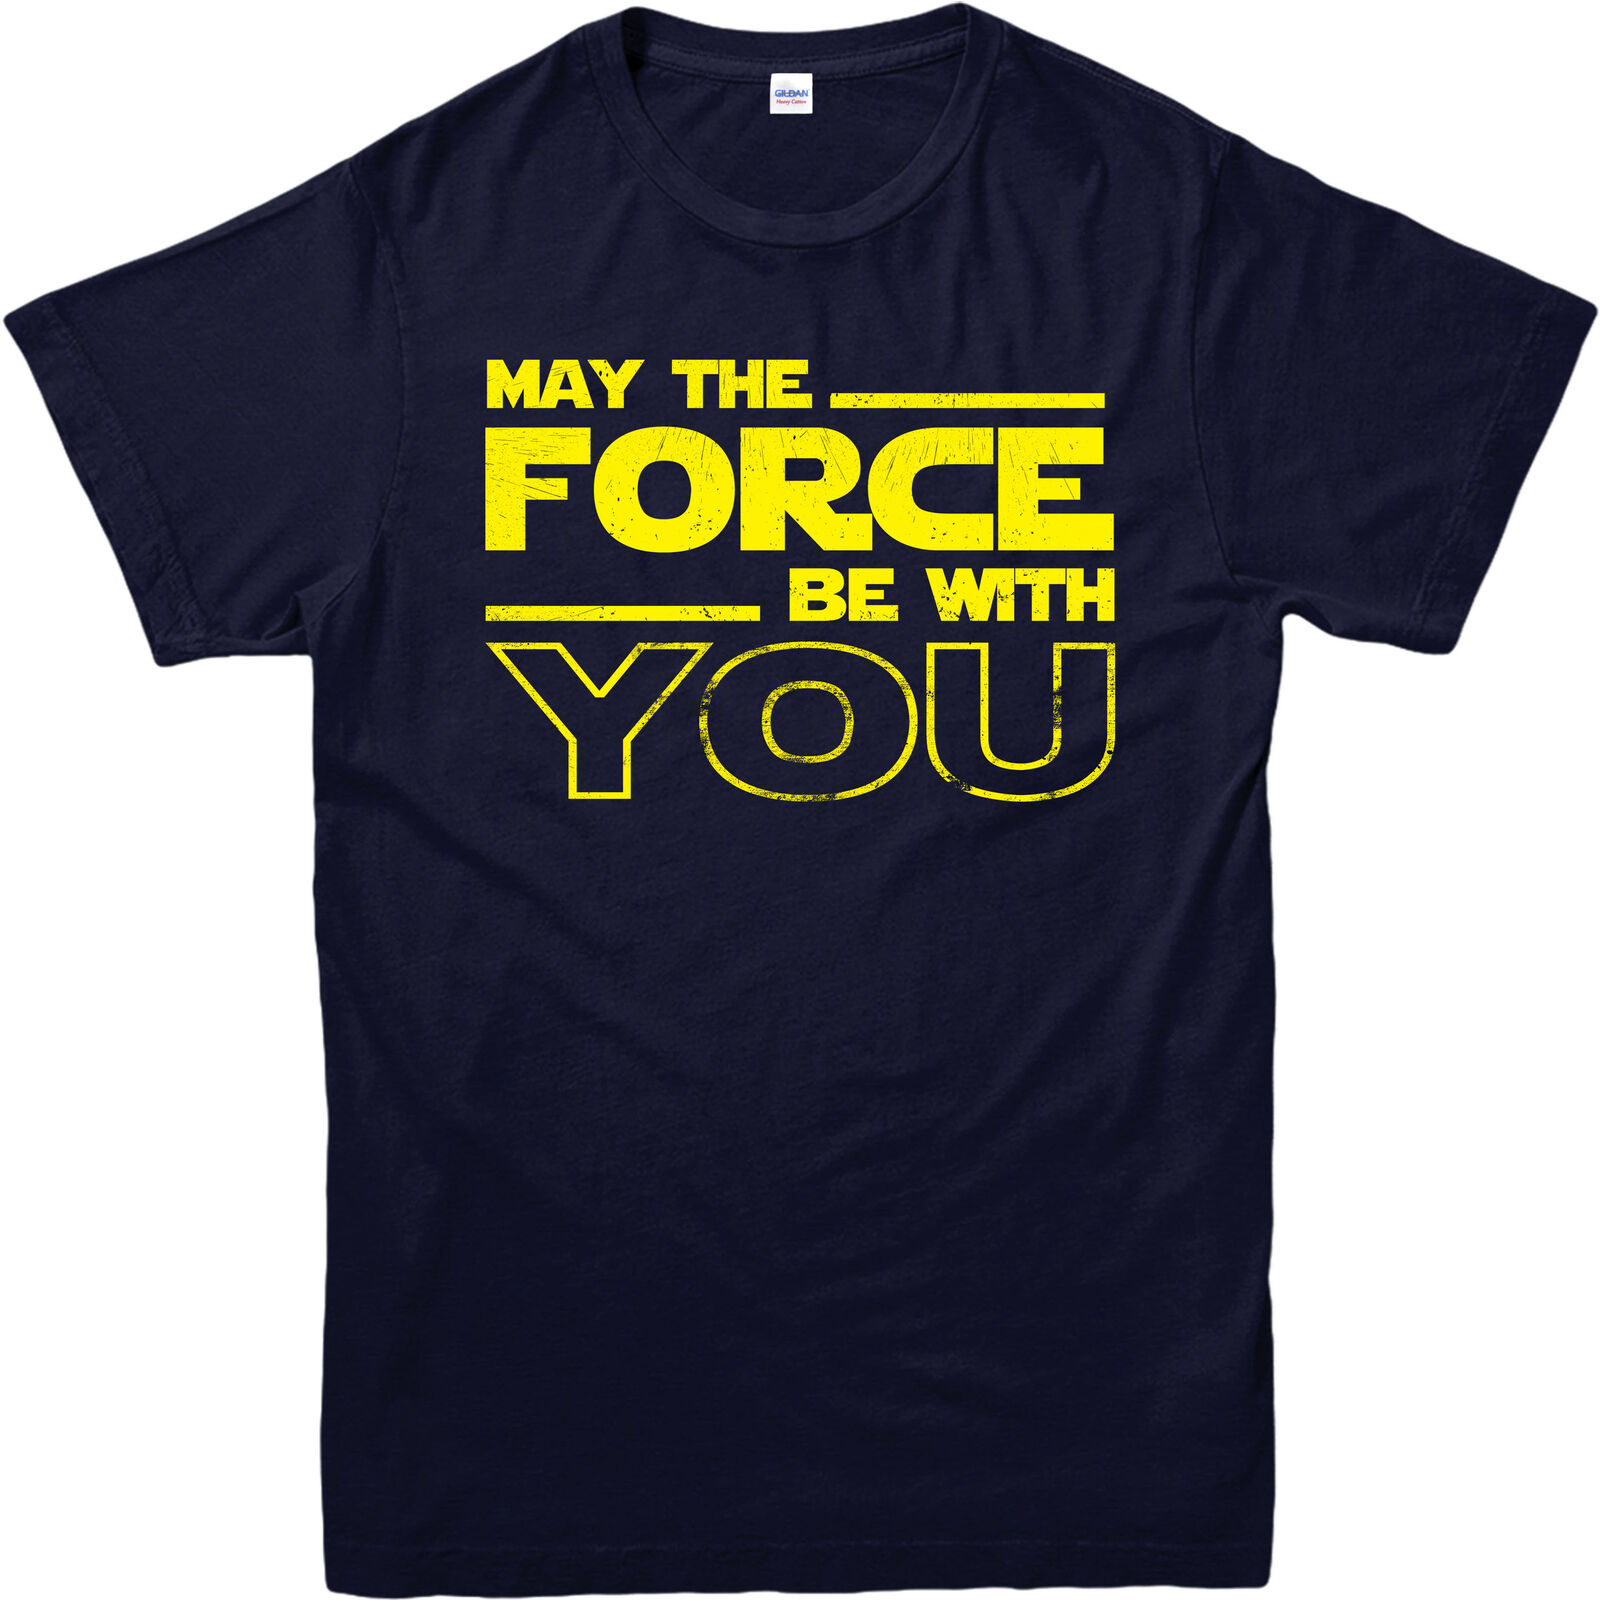 Camisetas para hombre, May the Force con U Anakin Skywalker, para adultos...